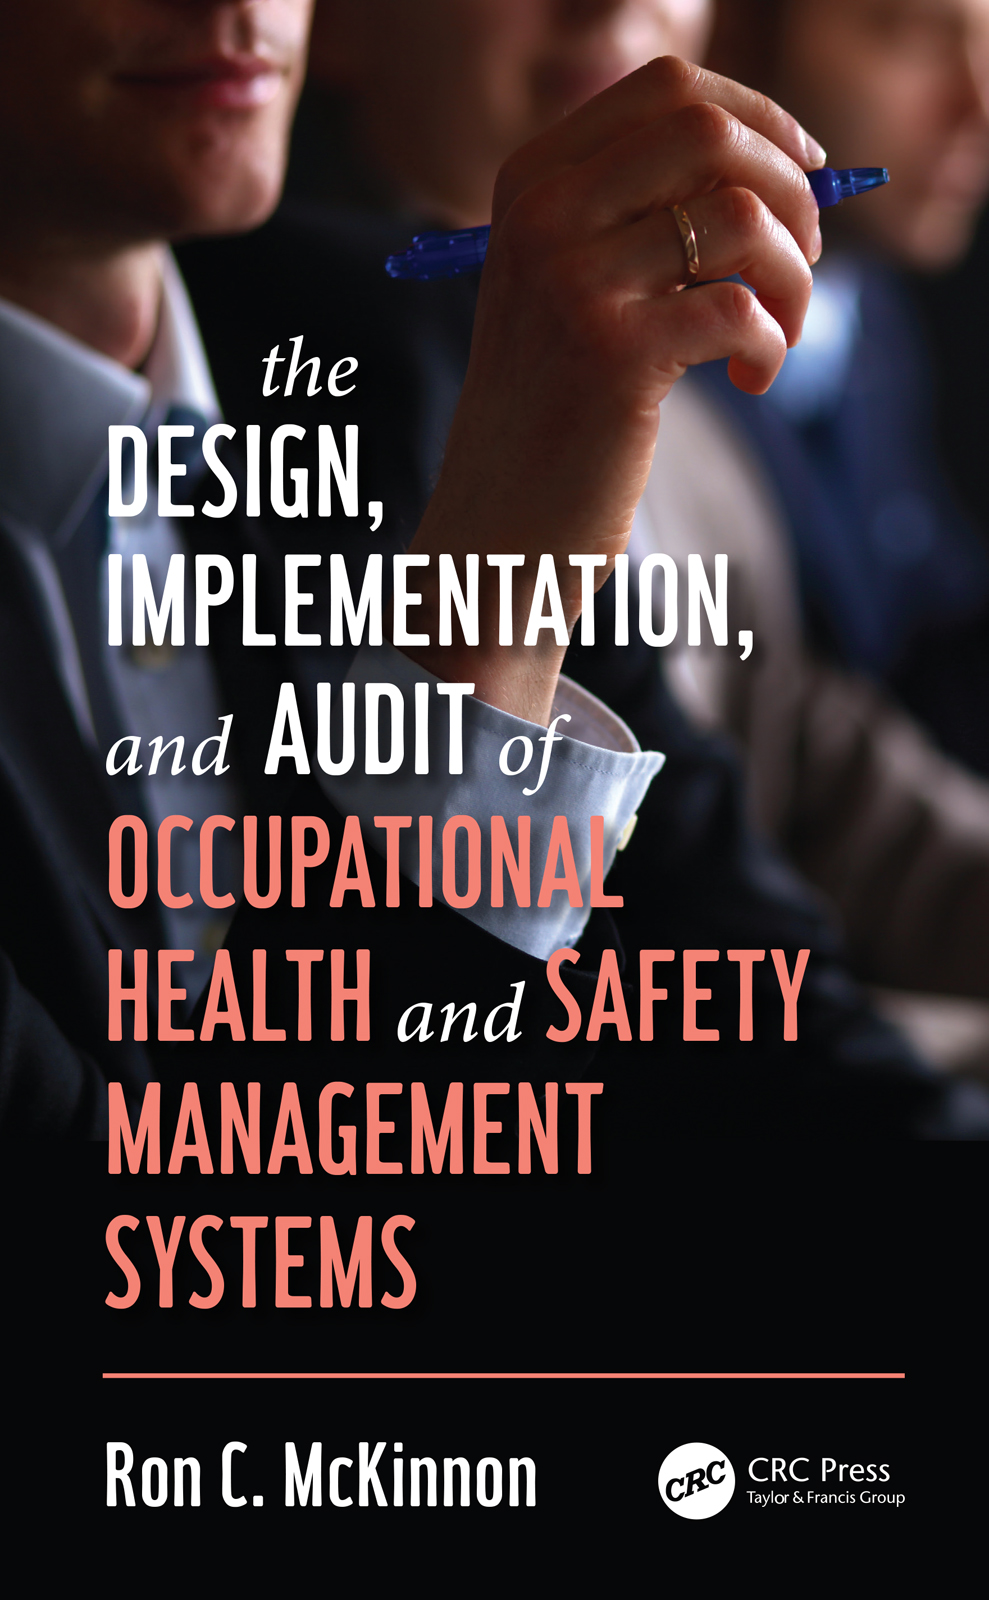 The Design, Implementation, and Audit of Occupational Health and Safety Management Systems book cover